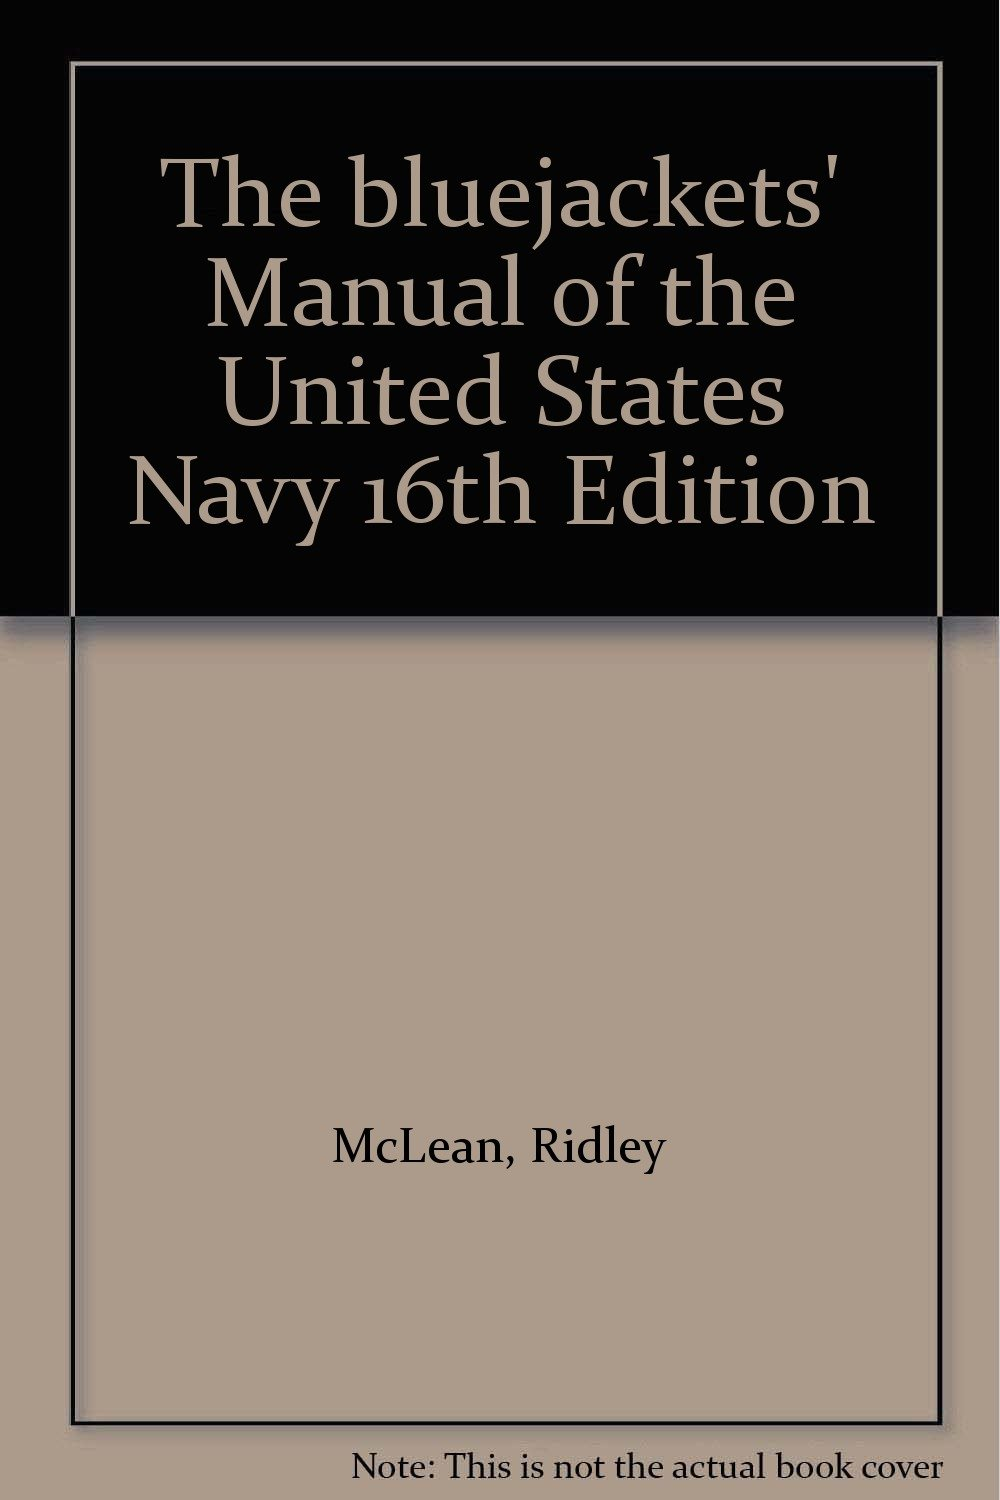 The bluejackets' Manual of the United States Navy 16th Edition: Ridley  McLean: Amazon.com: Books